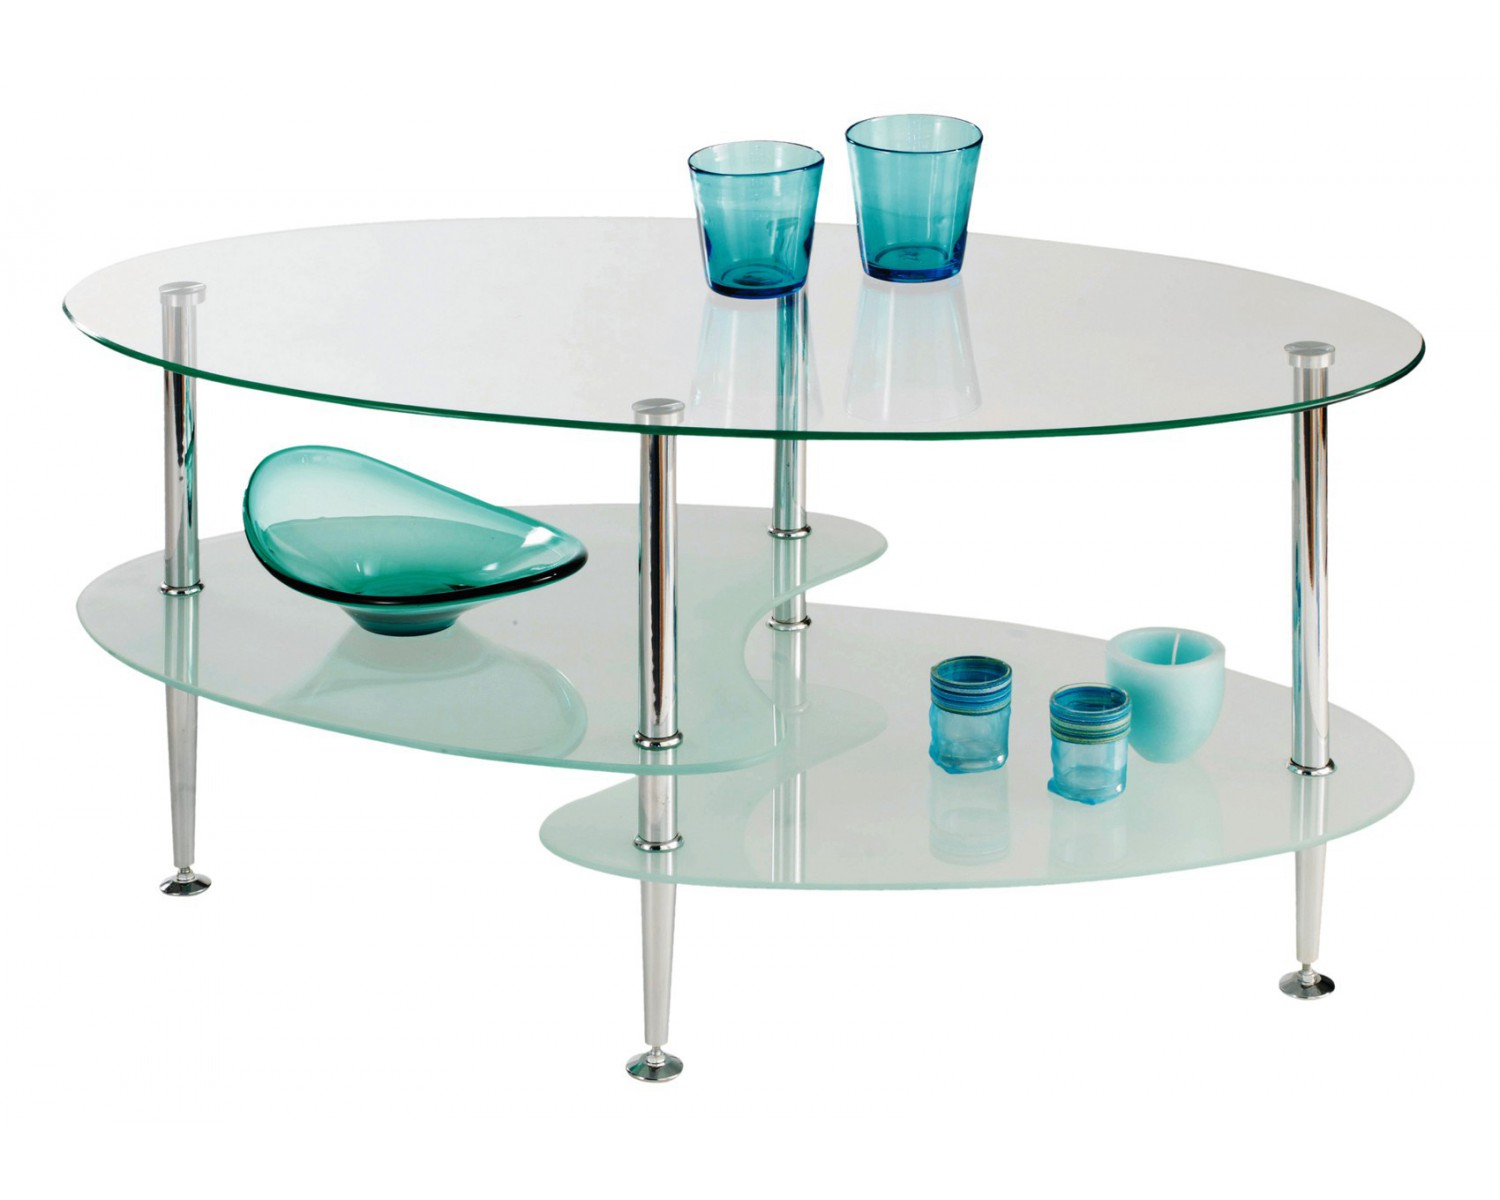 Couchtisch aus glas lounge piano tempered crystal clear for Couchtisch aus glas